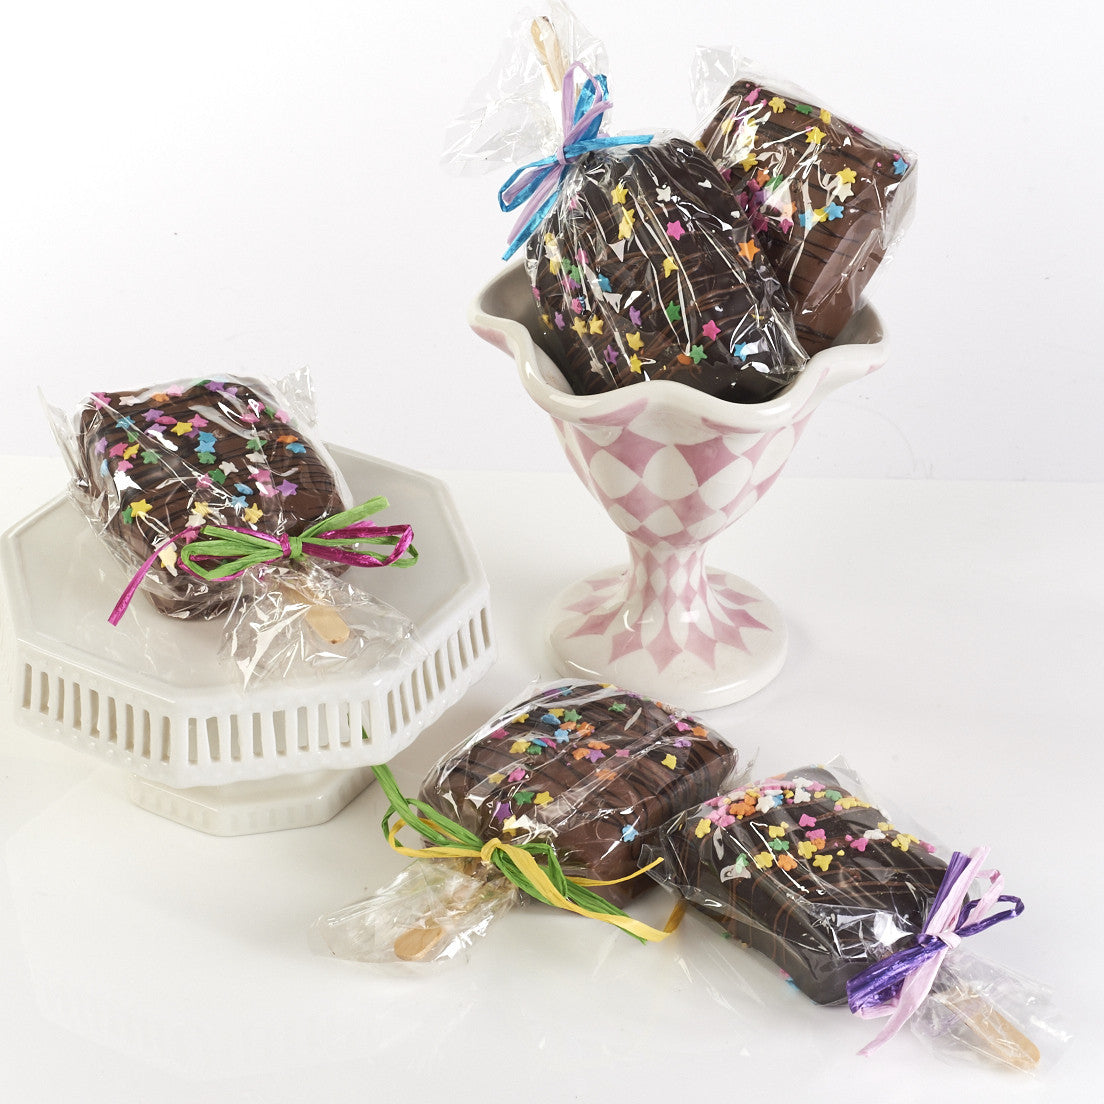 Chocolate Covered Krispy Treats, set of 4